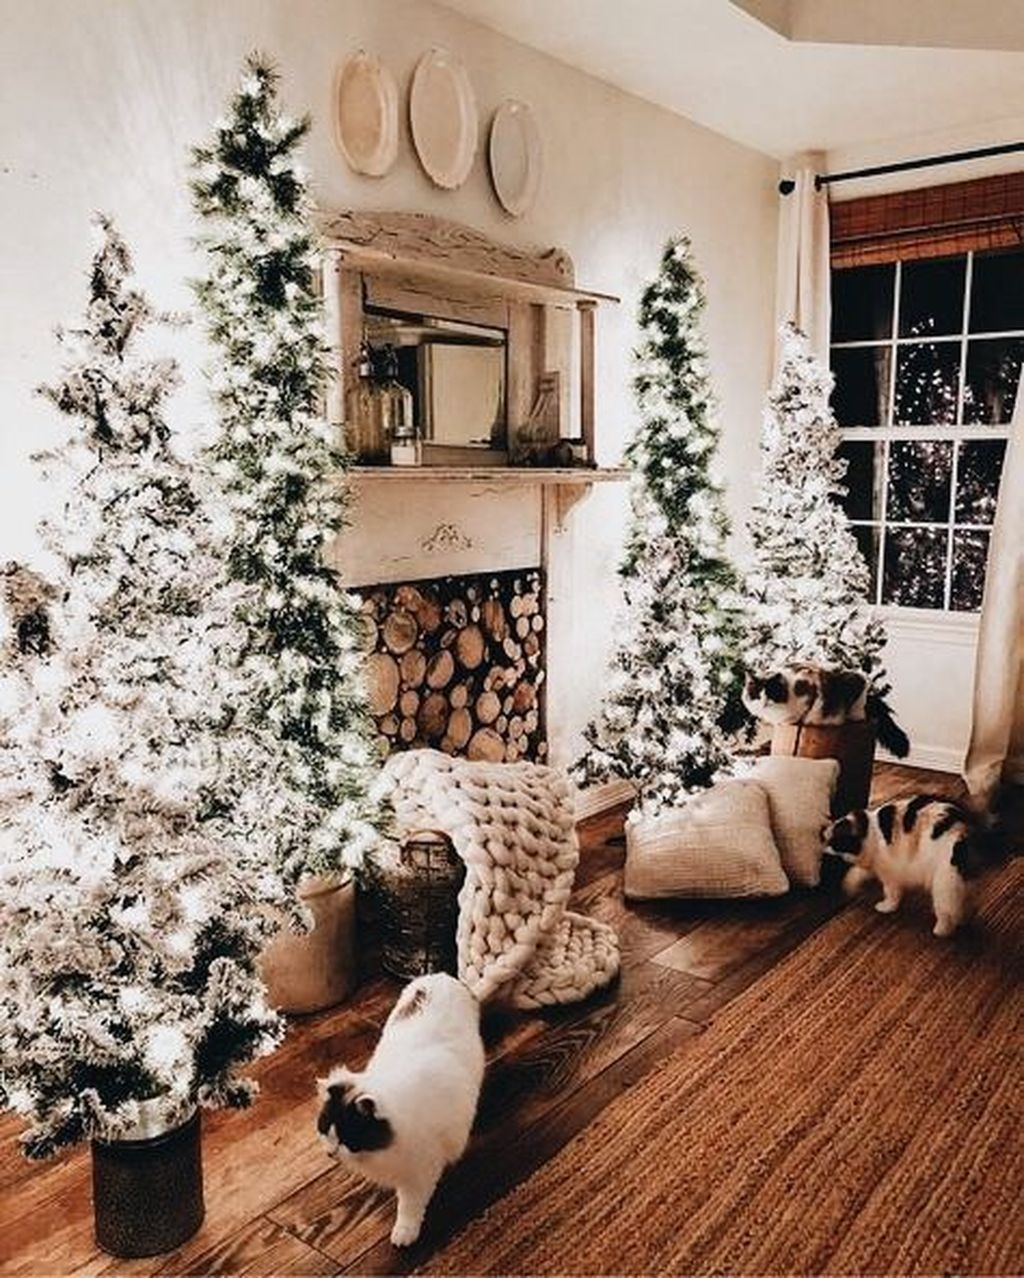 The Best Christmas Fireplace Decoration For Any Home Model 16